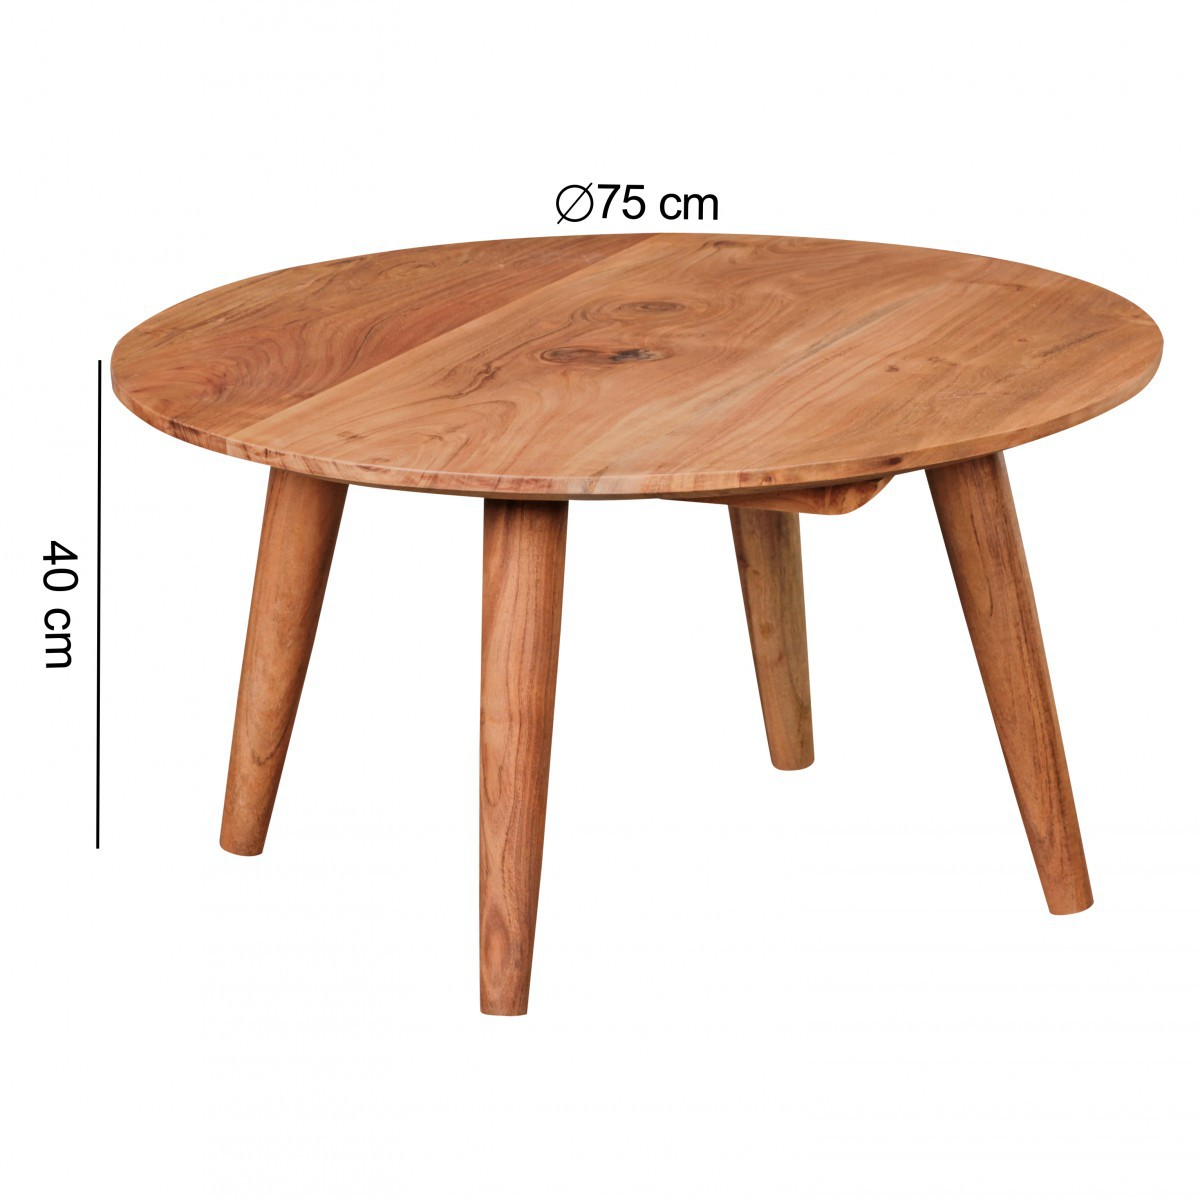 Finebuy table basse en bois massif acacia table basse ronde 75 x 40 cm ferme - Table basse bois fonce ...